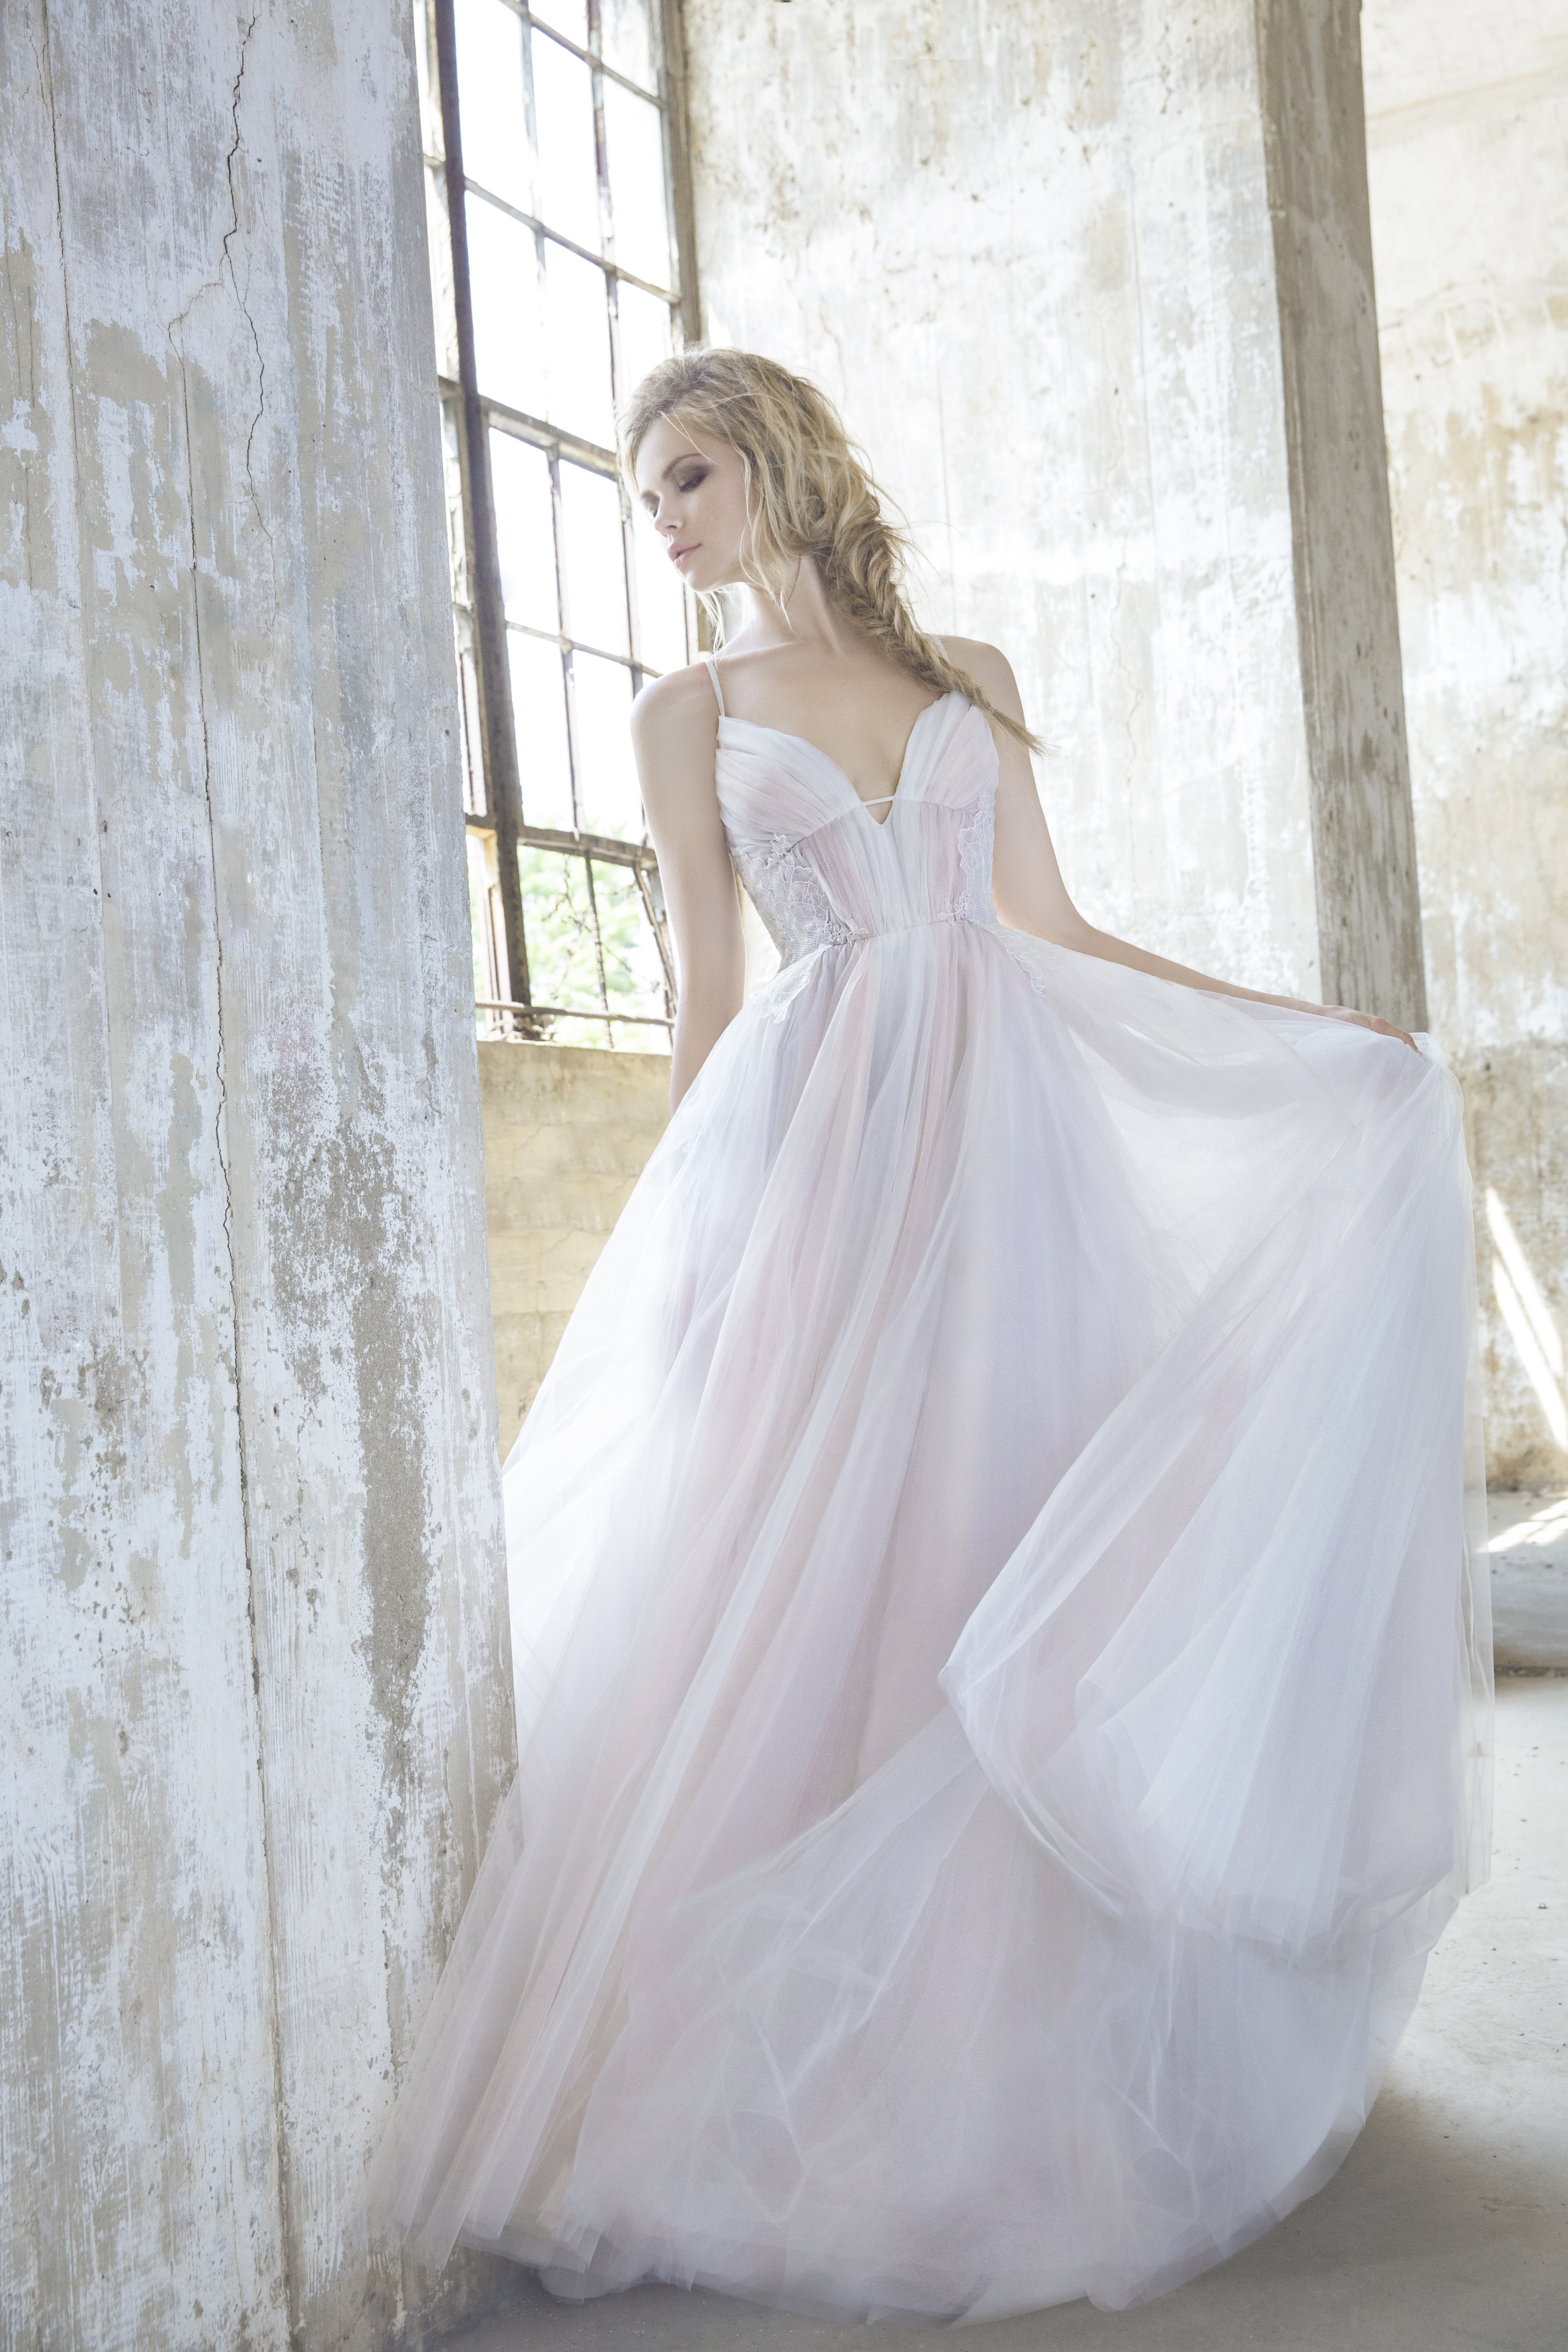 Bridal Gowns And Wedding Dresses By Jlm Couture Style 6752 Hawthorne